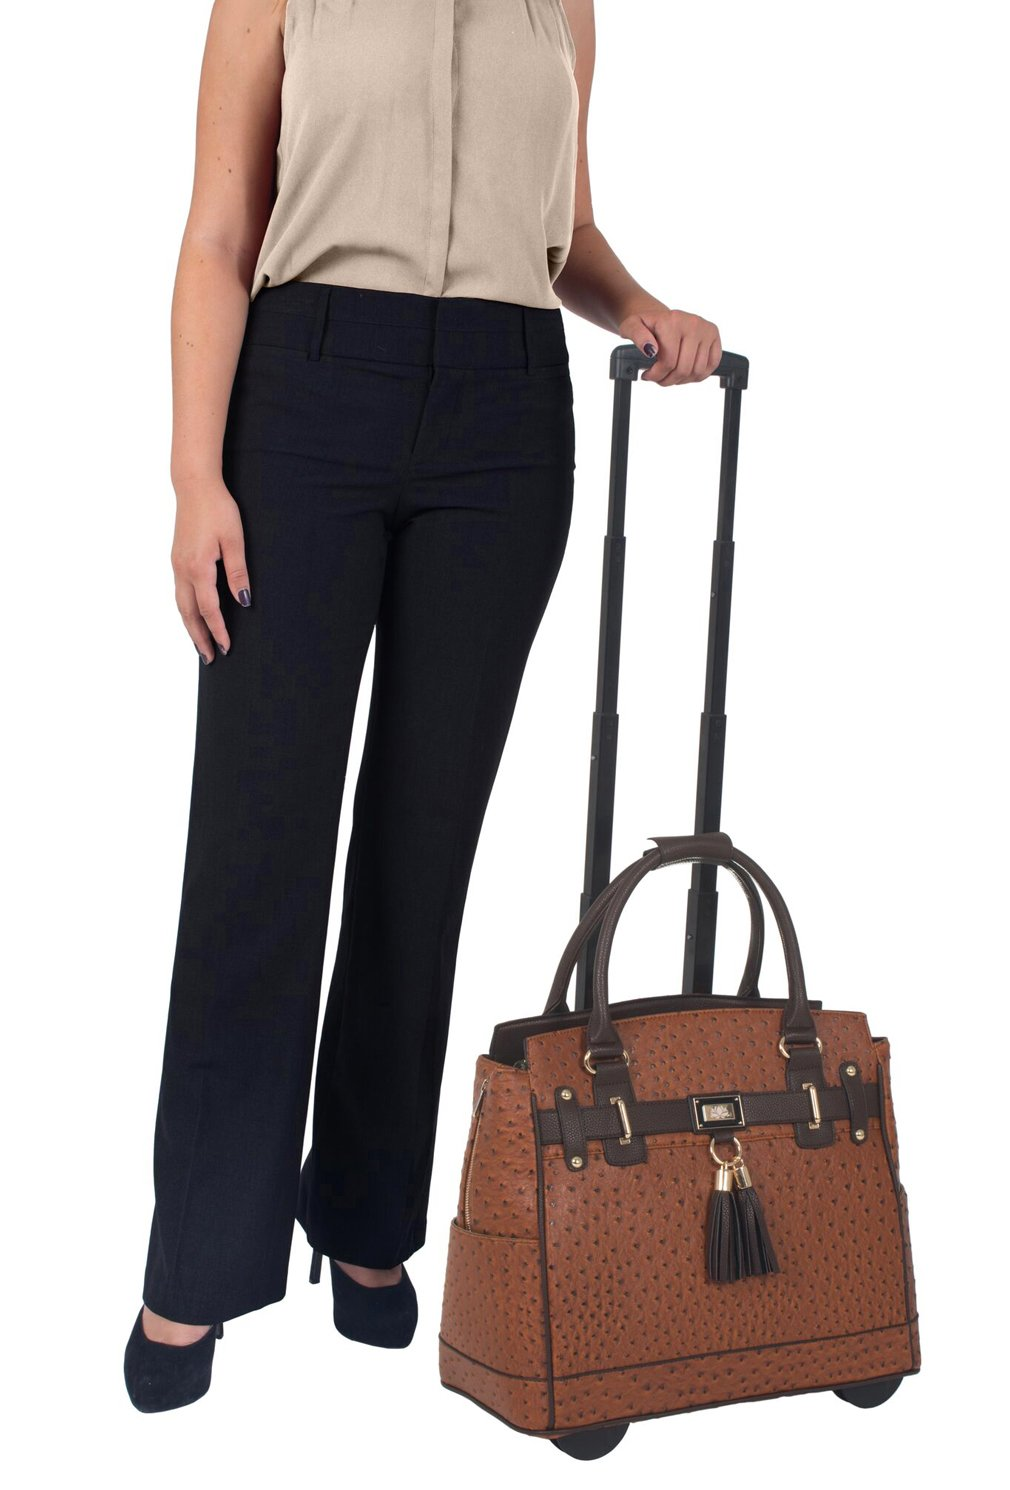 LESS THAN PERFECT - ''The Uptown'' Ostrich Computer iPad, Laptop Tablet Rolling Tote Bag Briefcase Carryall Bag